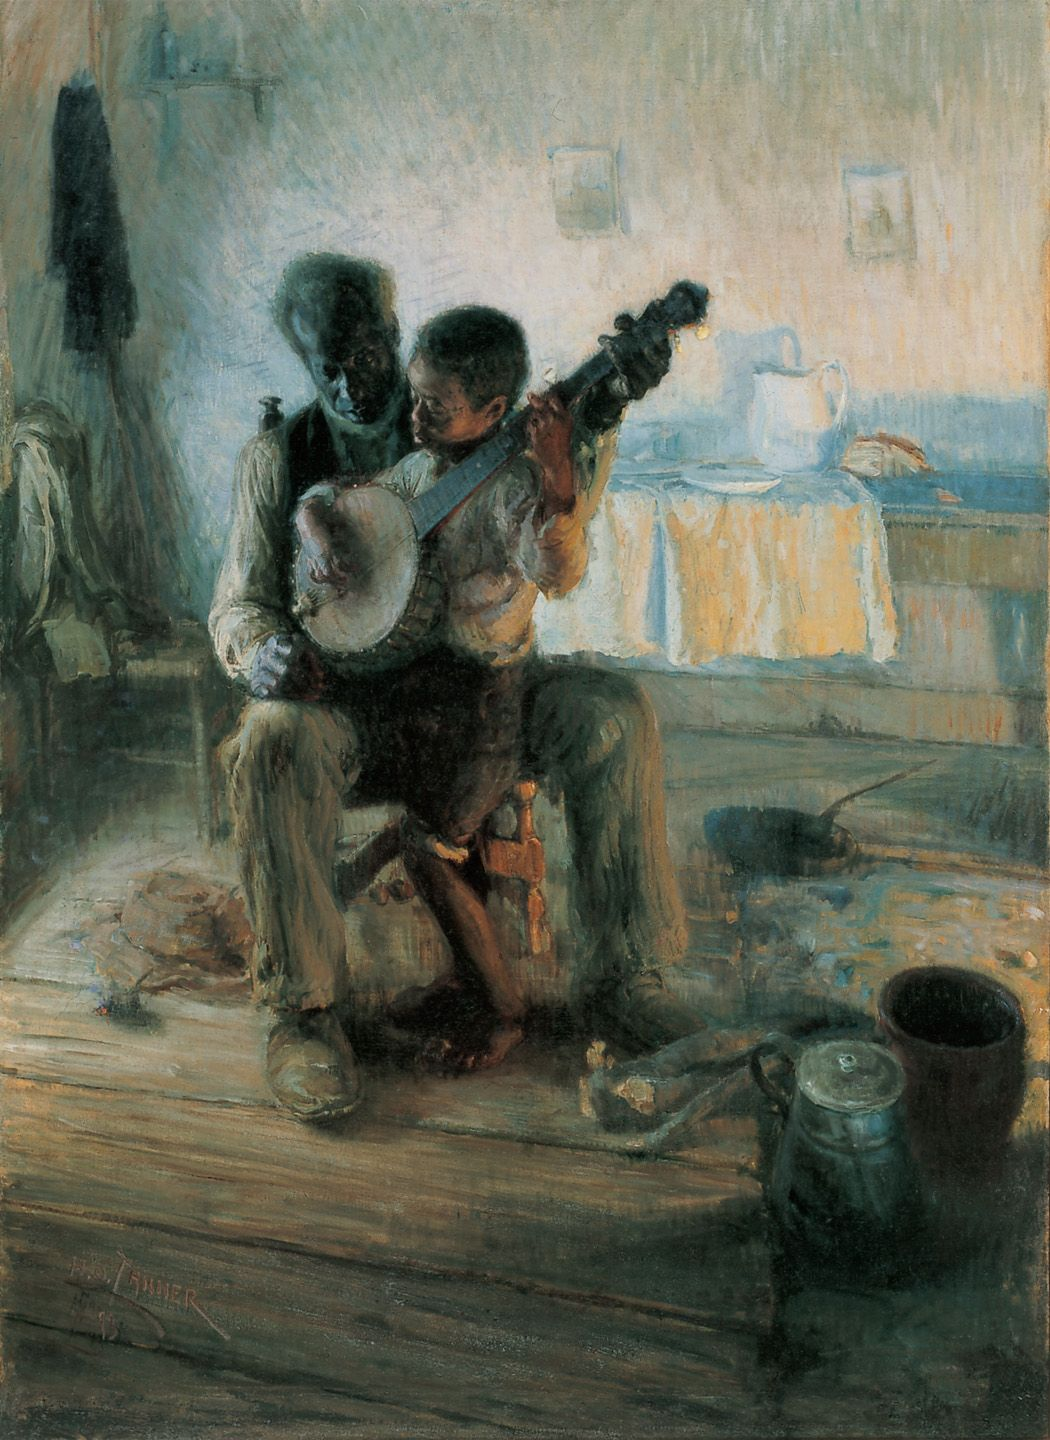 """3.161 Henry Ossawa Tanner, """"The Banjo Lesson"""", 1893. Oil on canvas, 48 × 35½"""". (American)"""